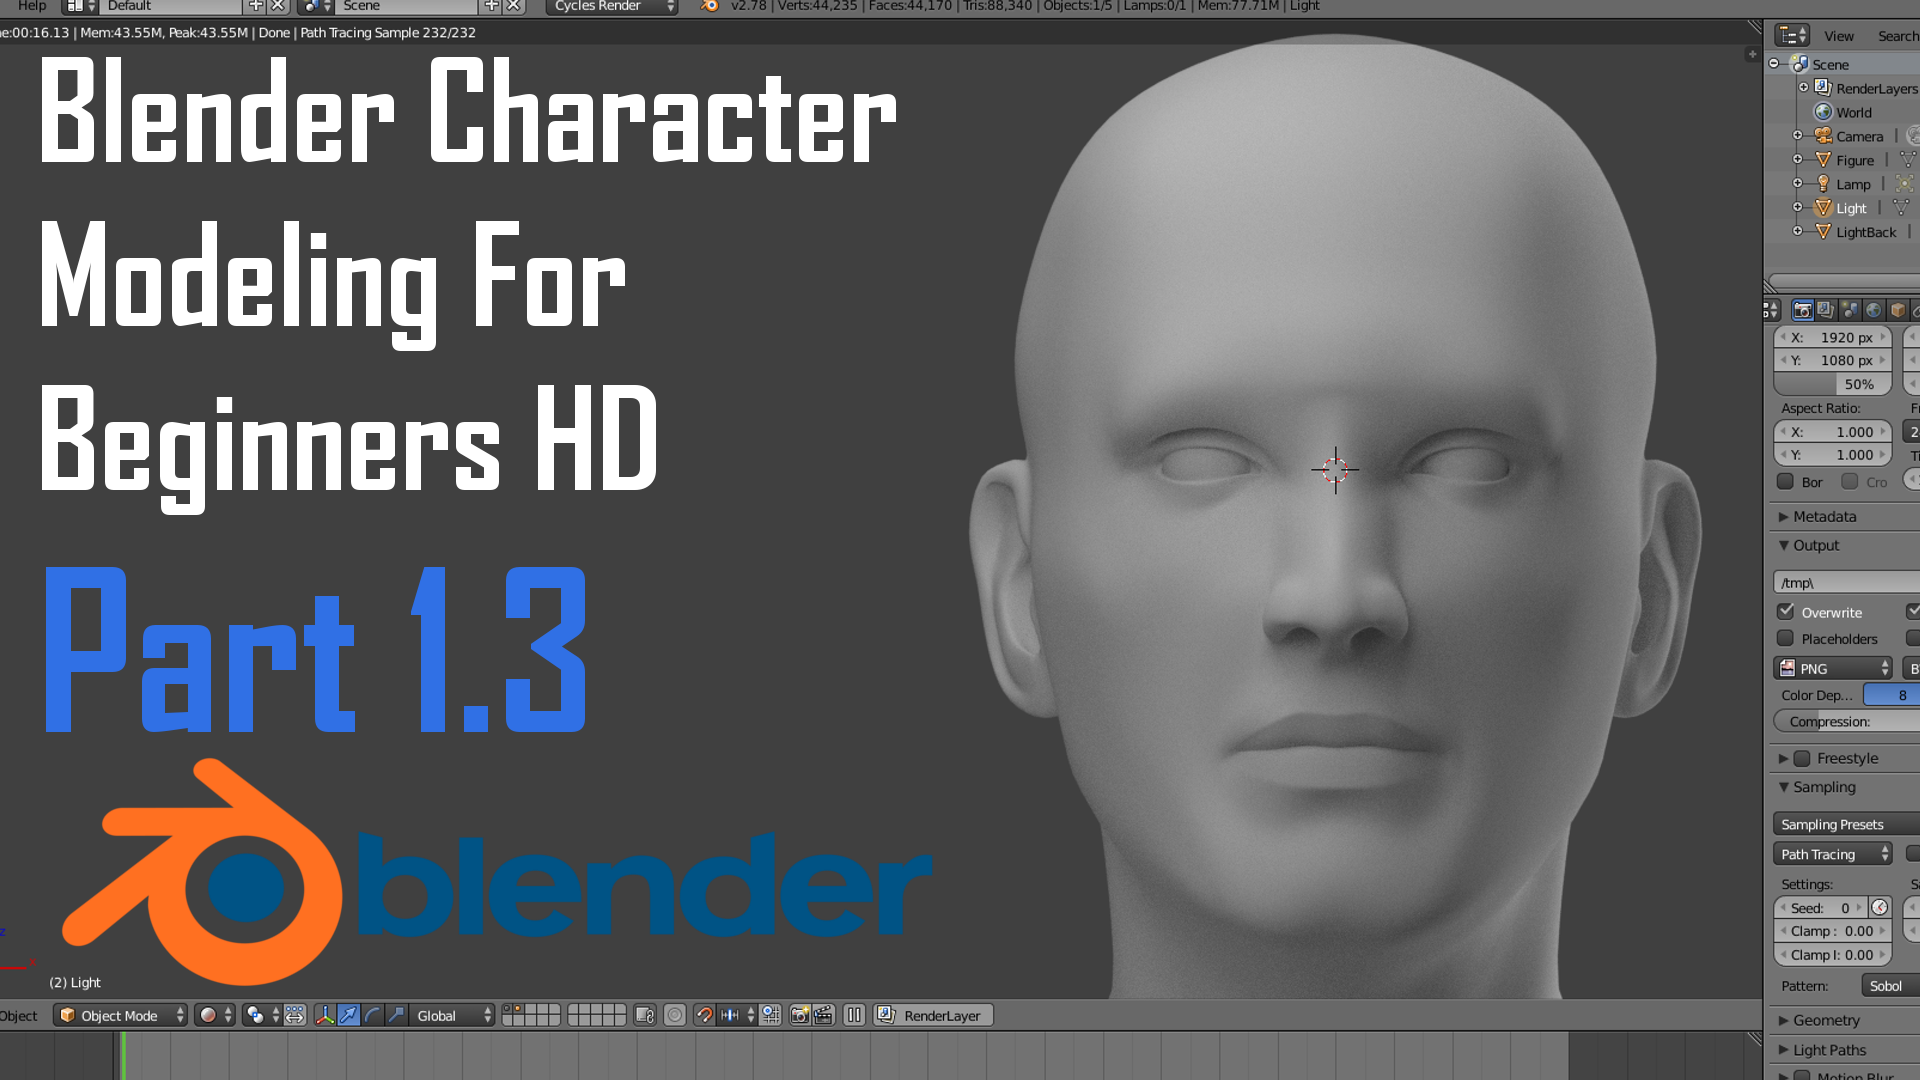 Blender Character Modeling Tutorial Beginner : Tutorial blender character modeling for beginners